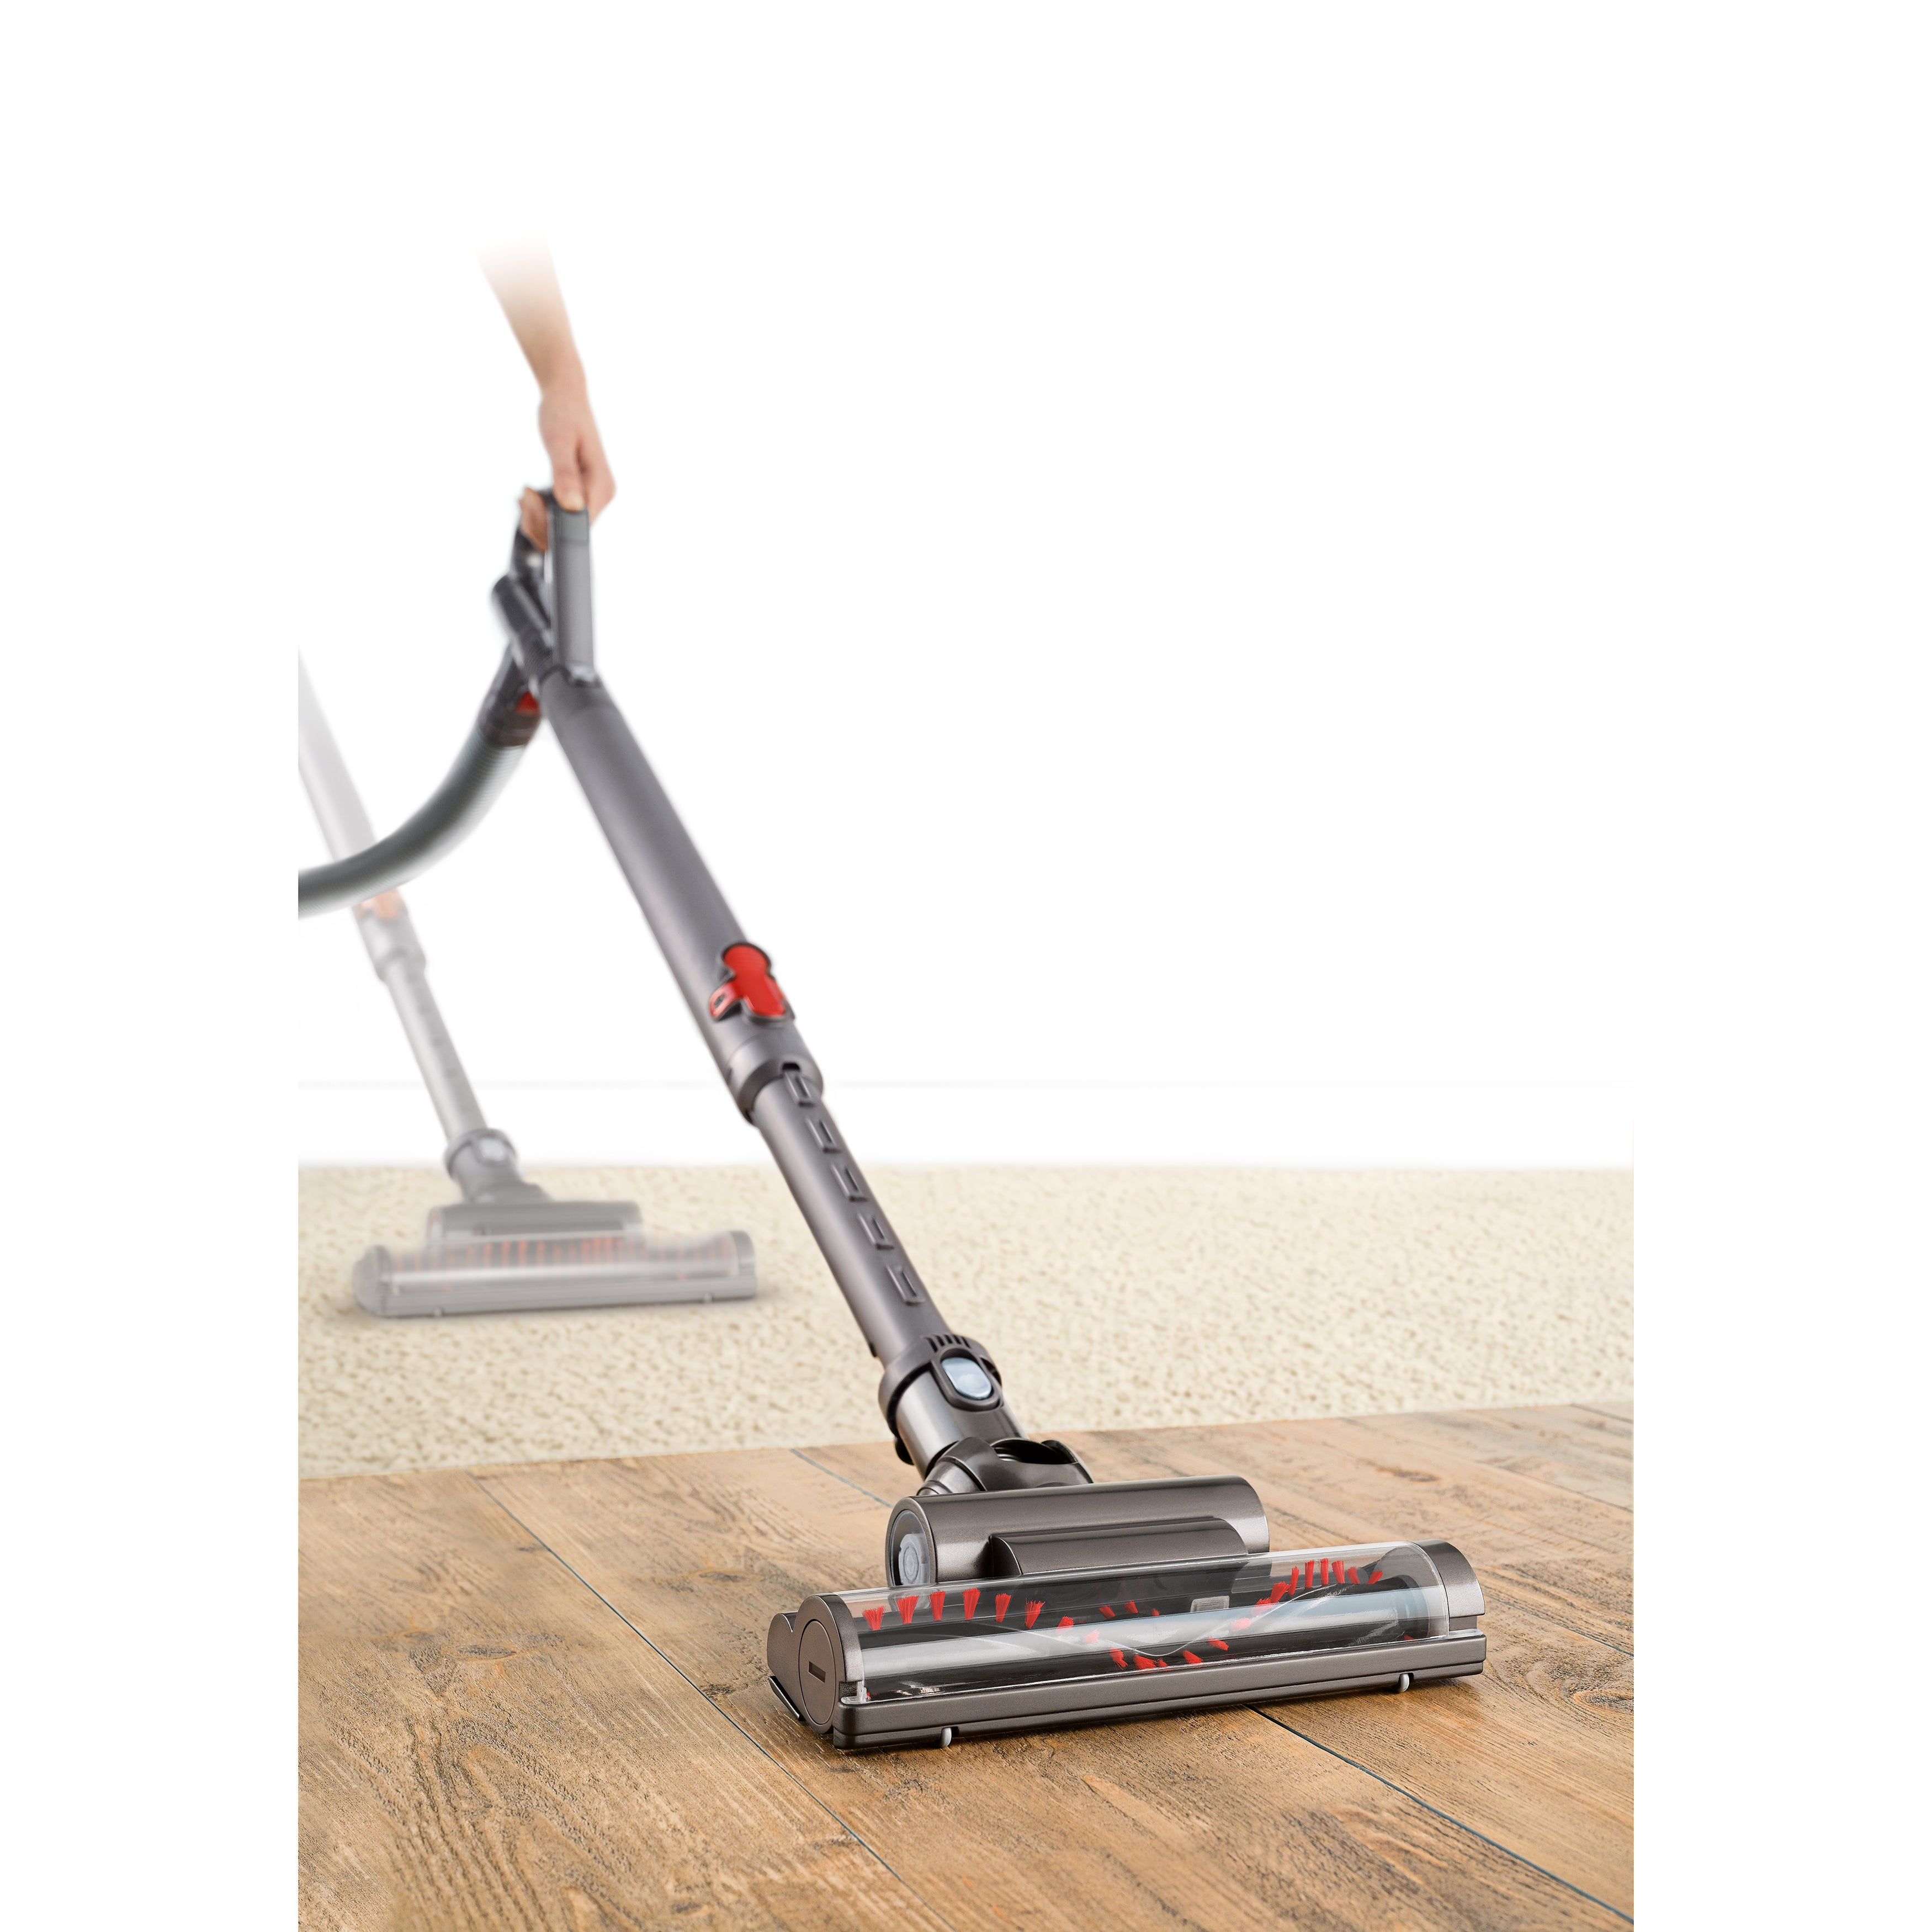 multi dyson complete abdb free shipping floor upright garden animal home refurbished vacuum overstock today ball product